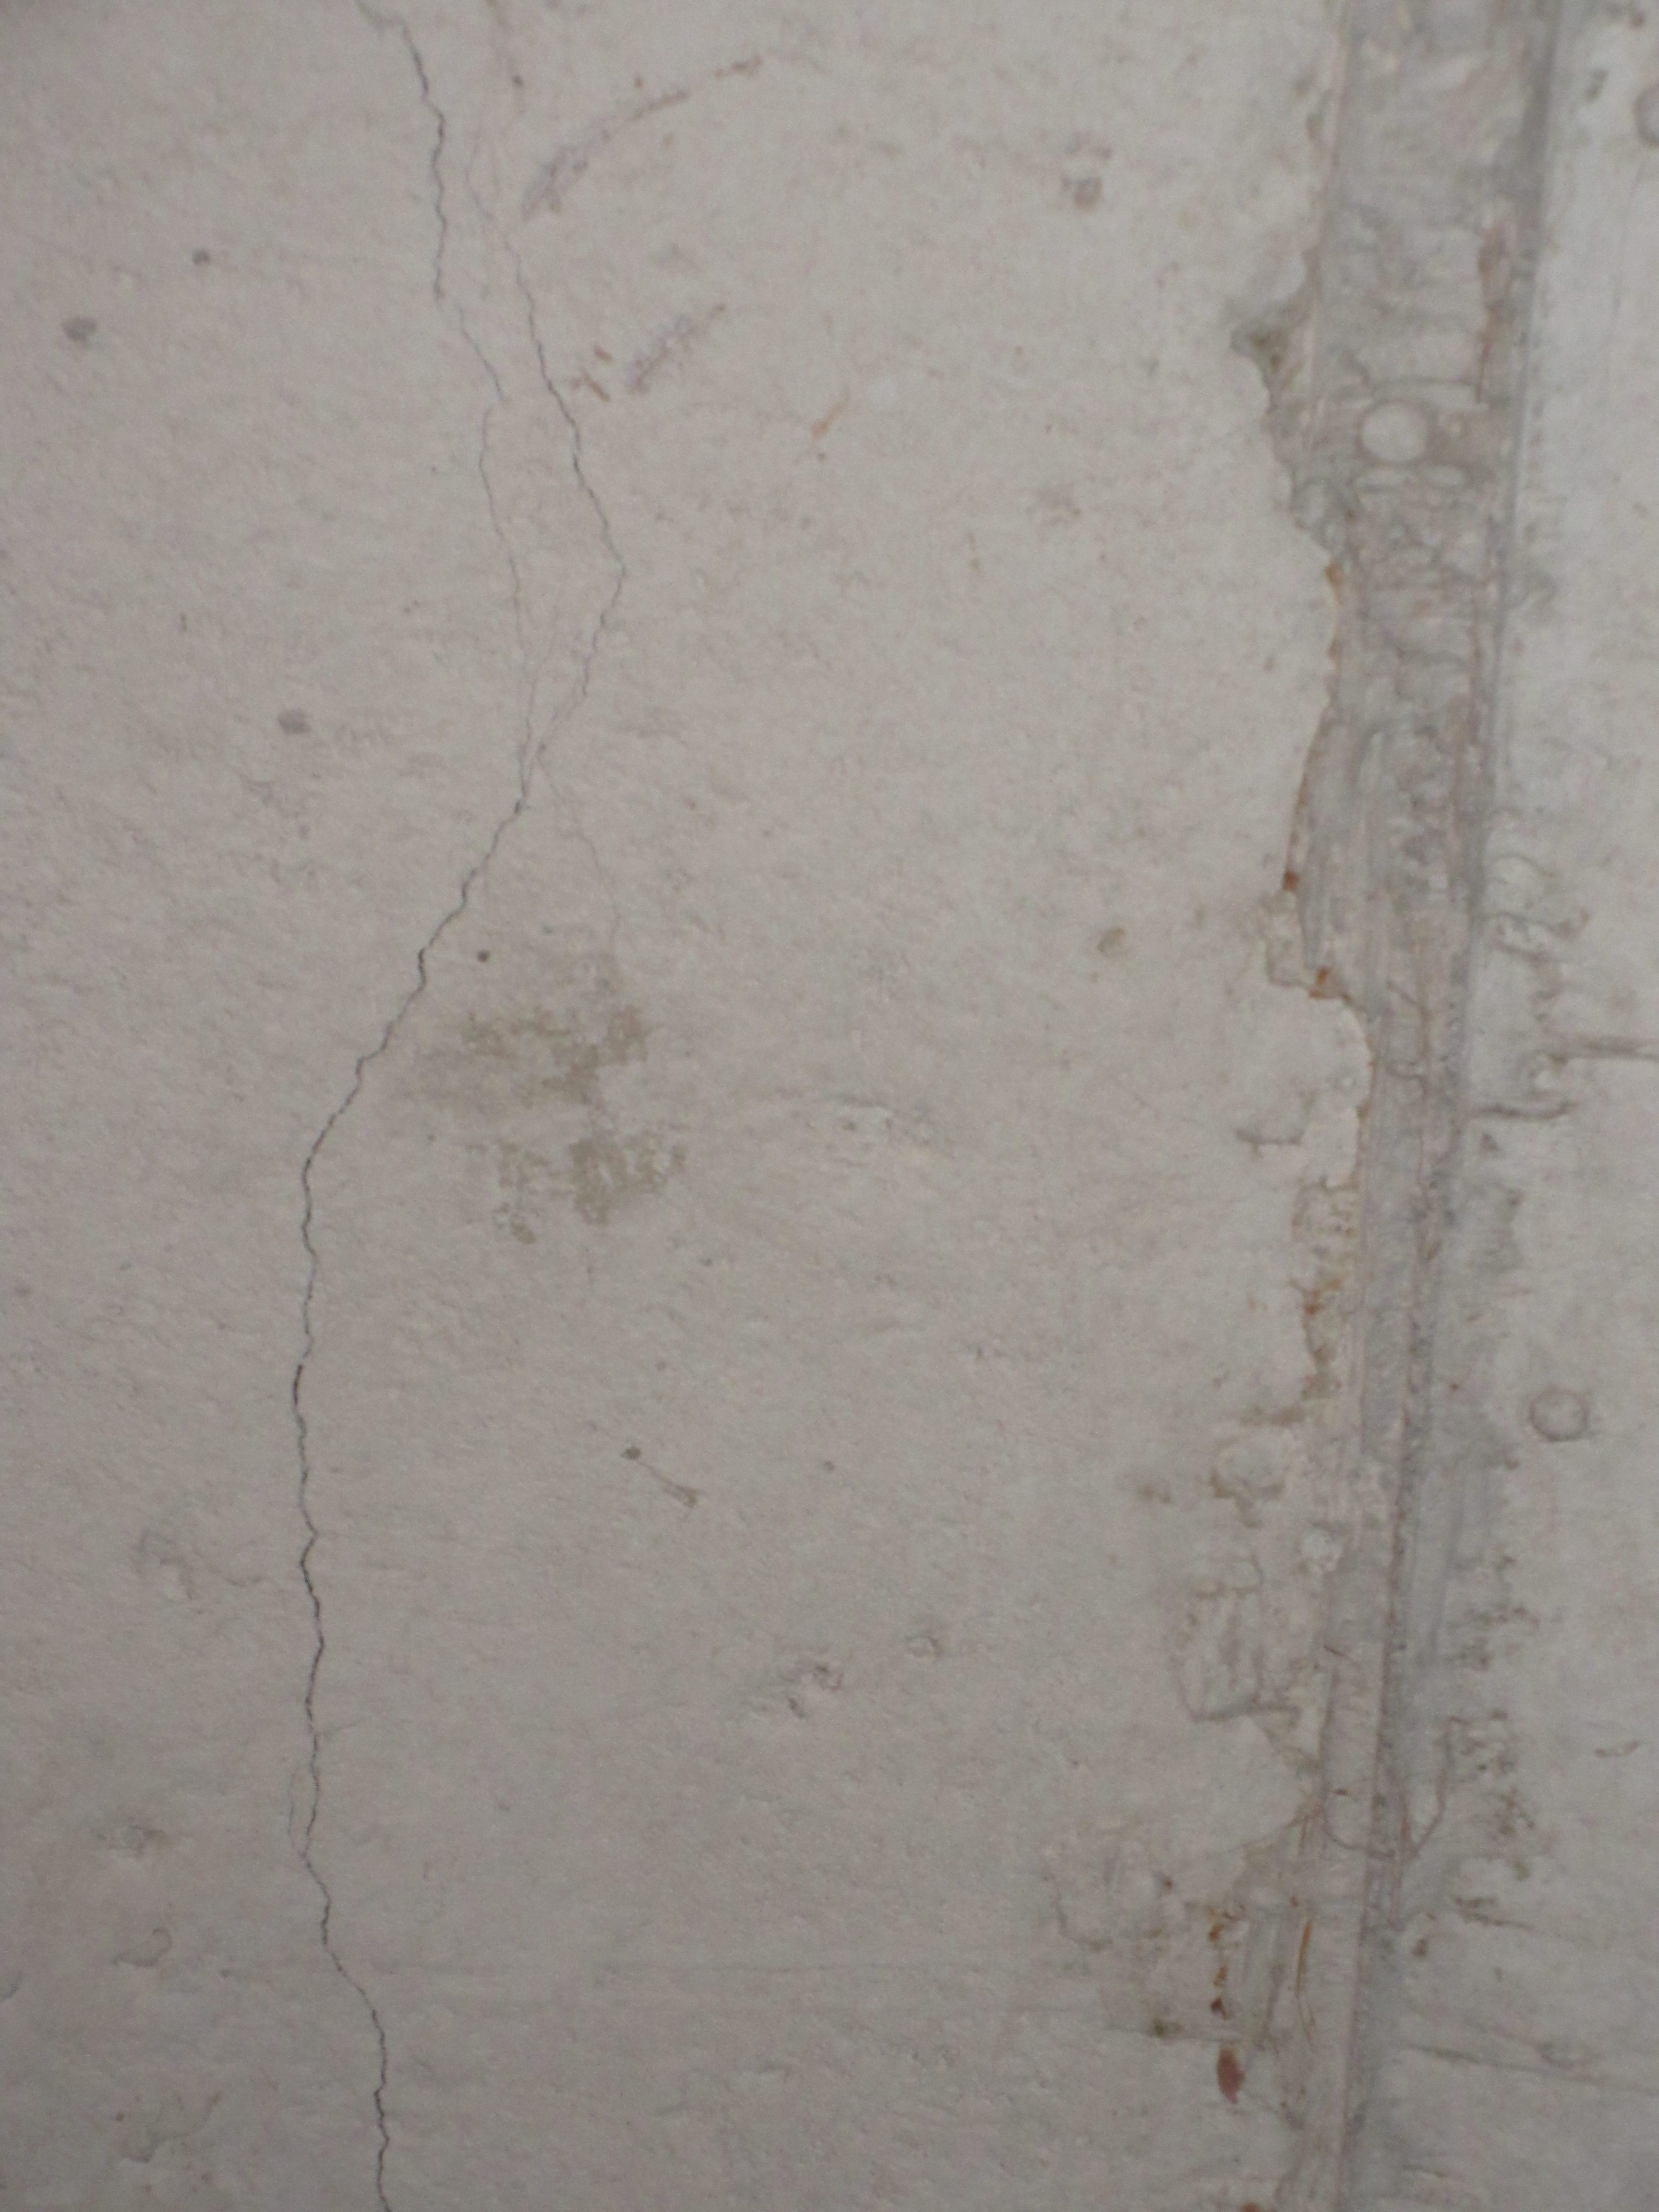 Home inspection poured concrete cracks in the foundation for Poured concrete foundation cracks